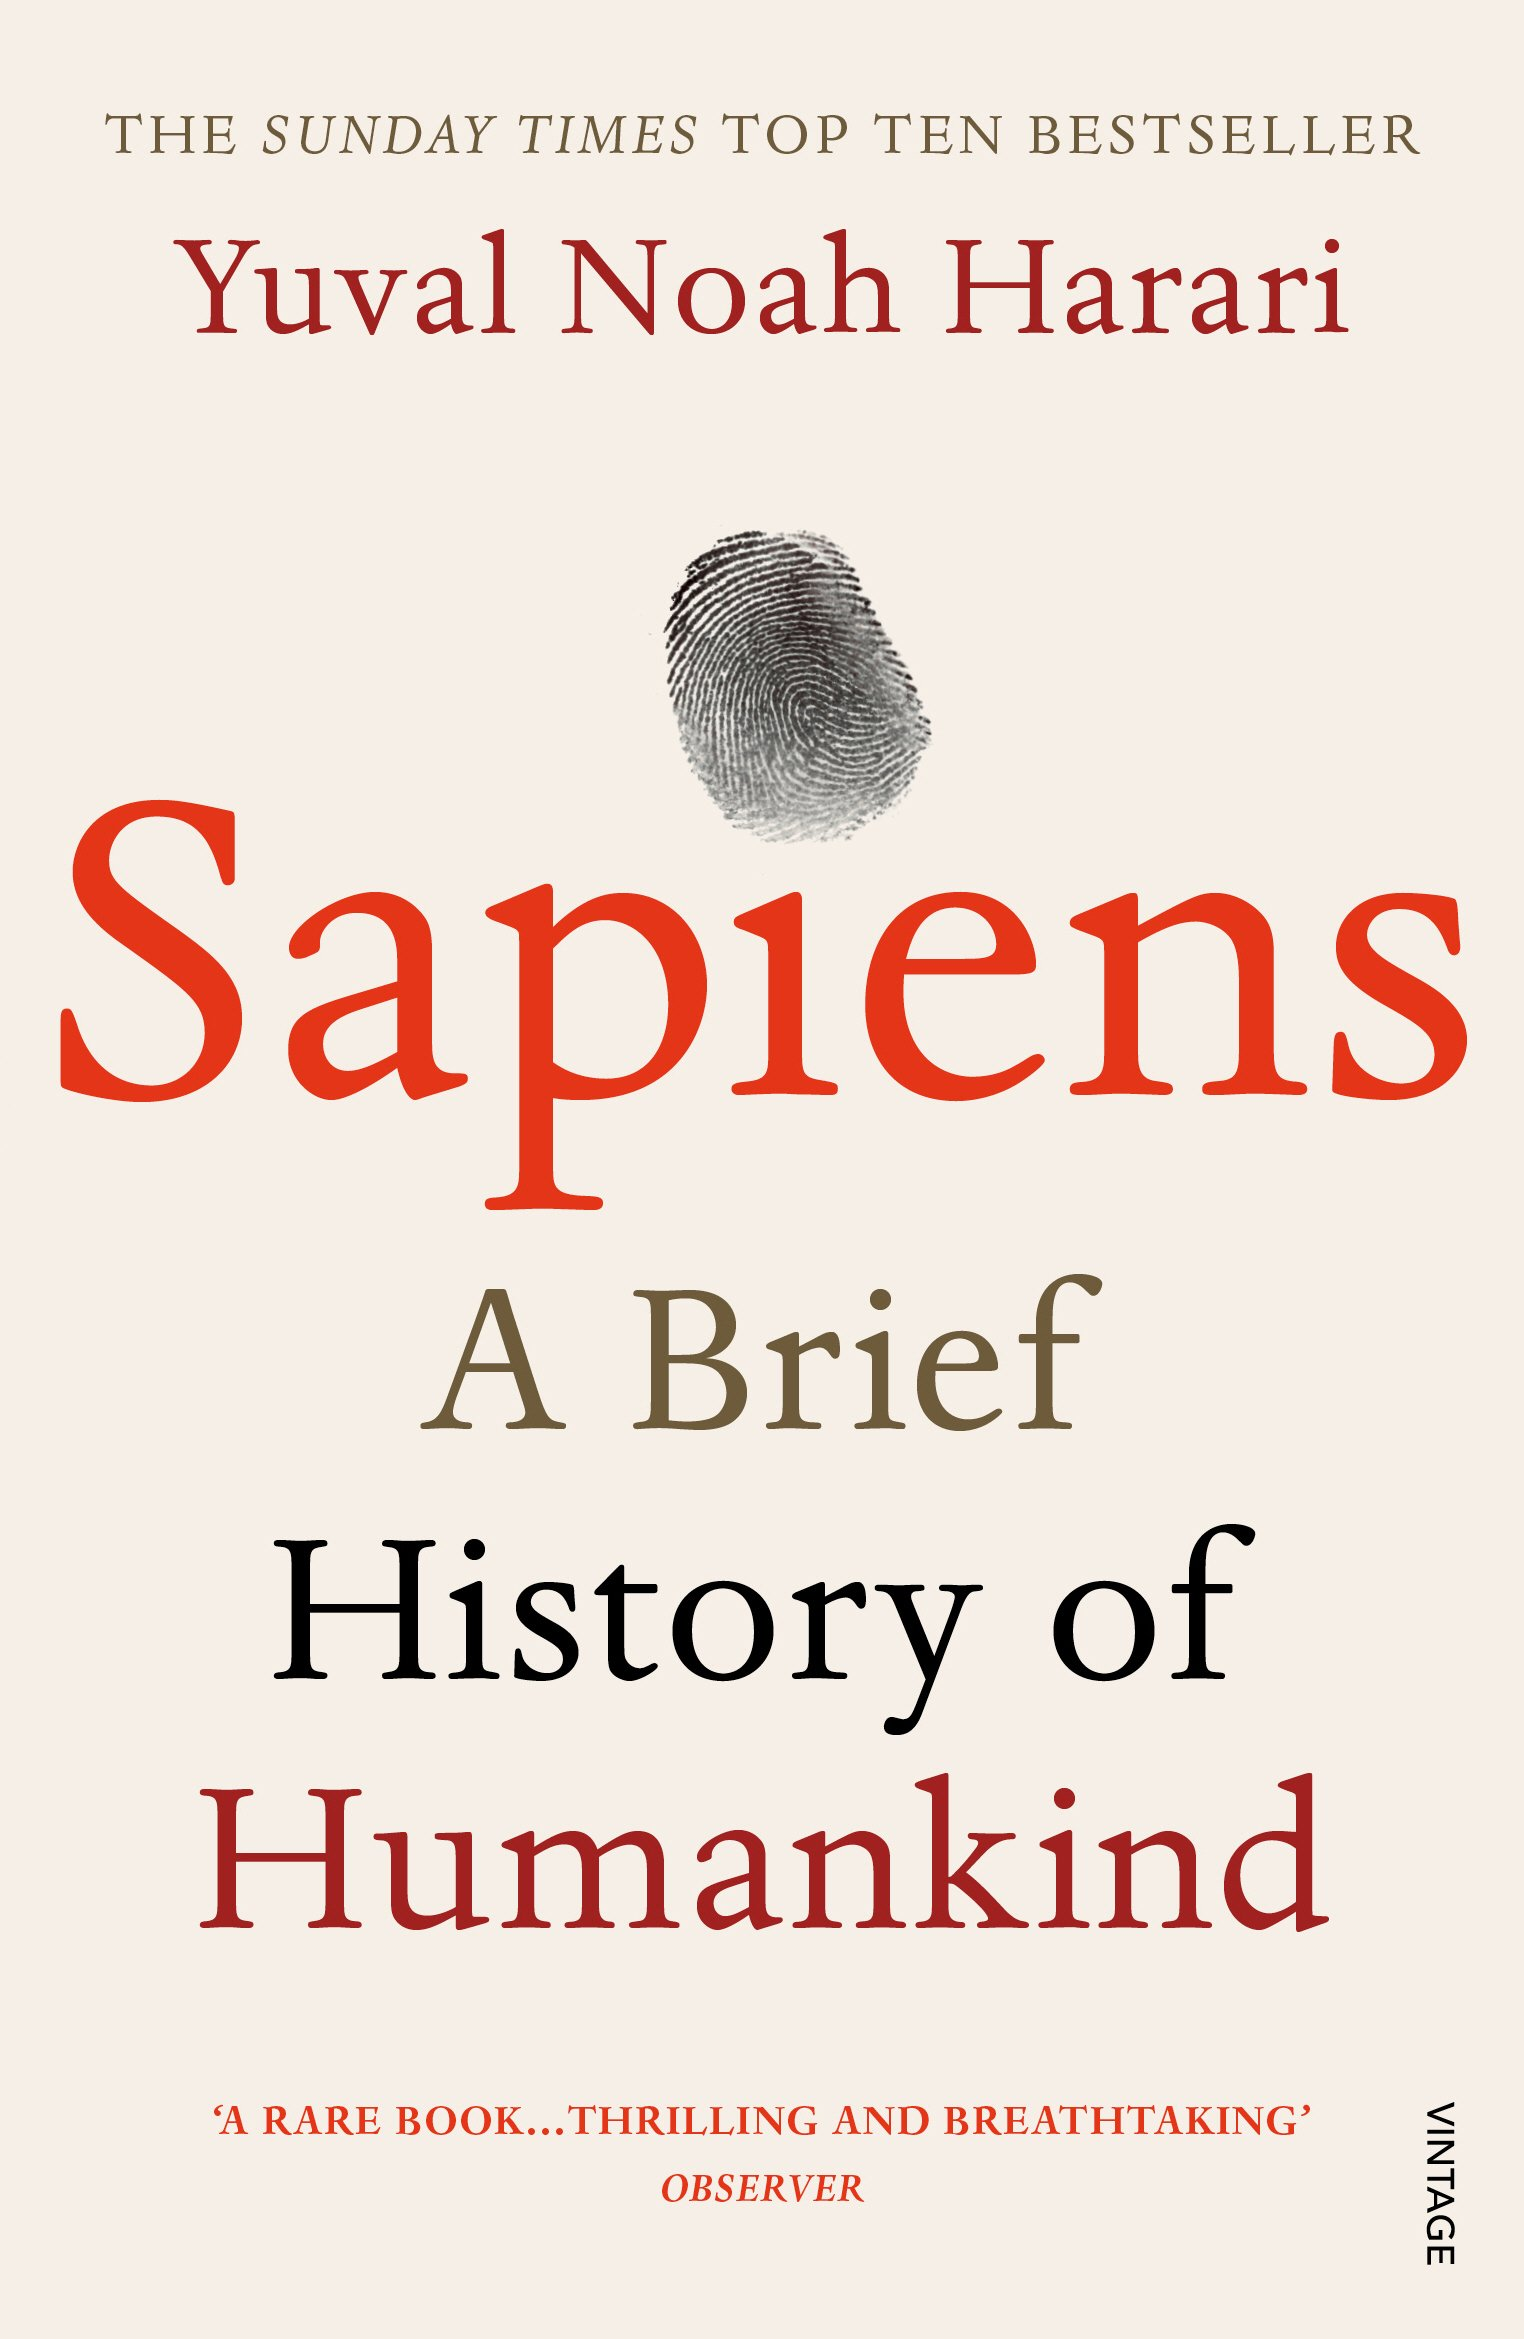 Sapiens - A Brief History of Humankind - 5 Impactful Books